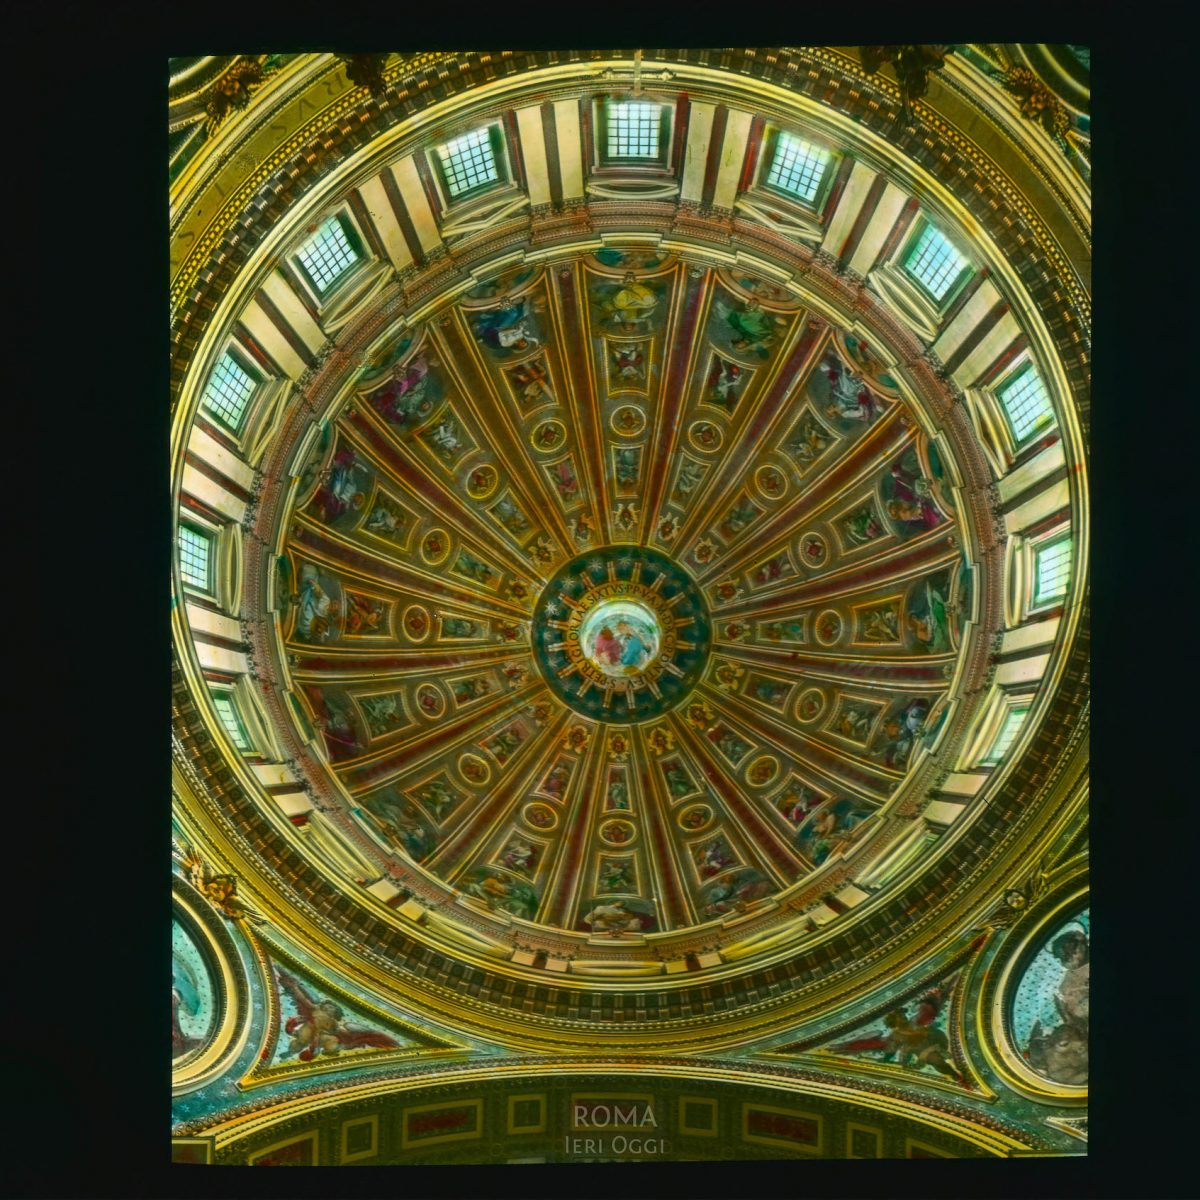 Vatican City. St. Peter's Basilica: interior view upwards towards dome ceiling View in tinted lantern slide, ca. 1919-1938. The basilica dates from ca. 1506-1626.